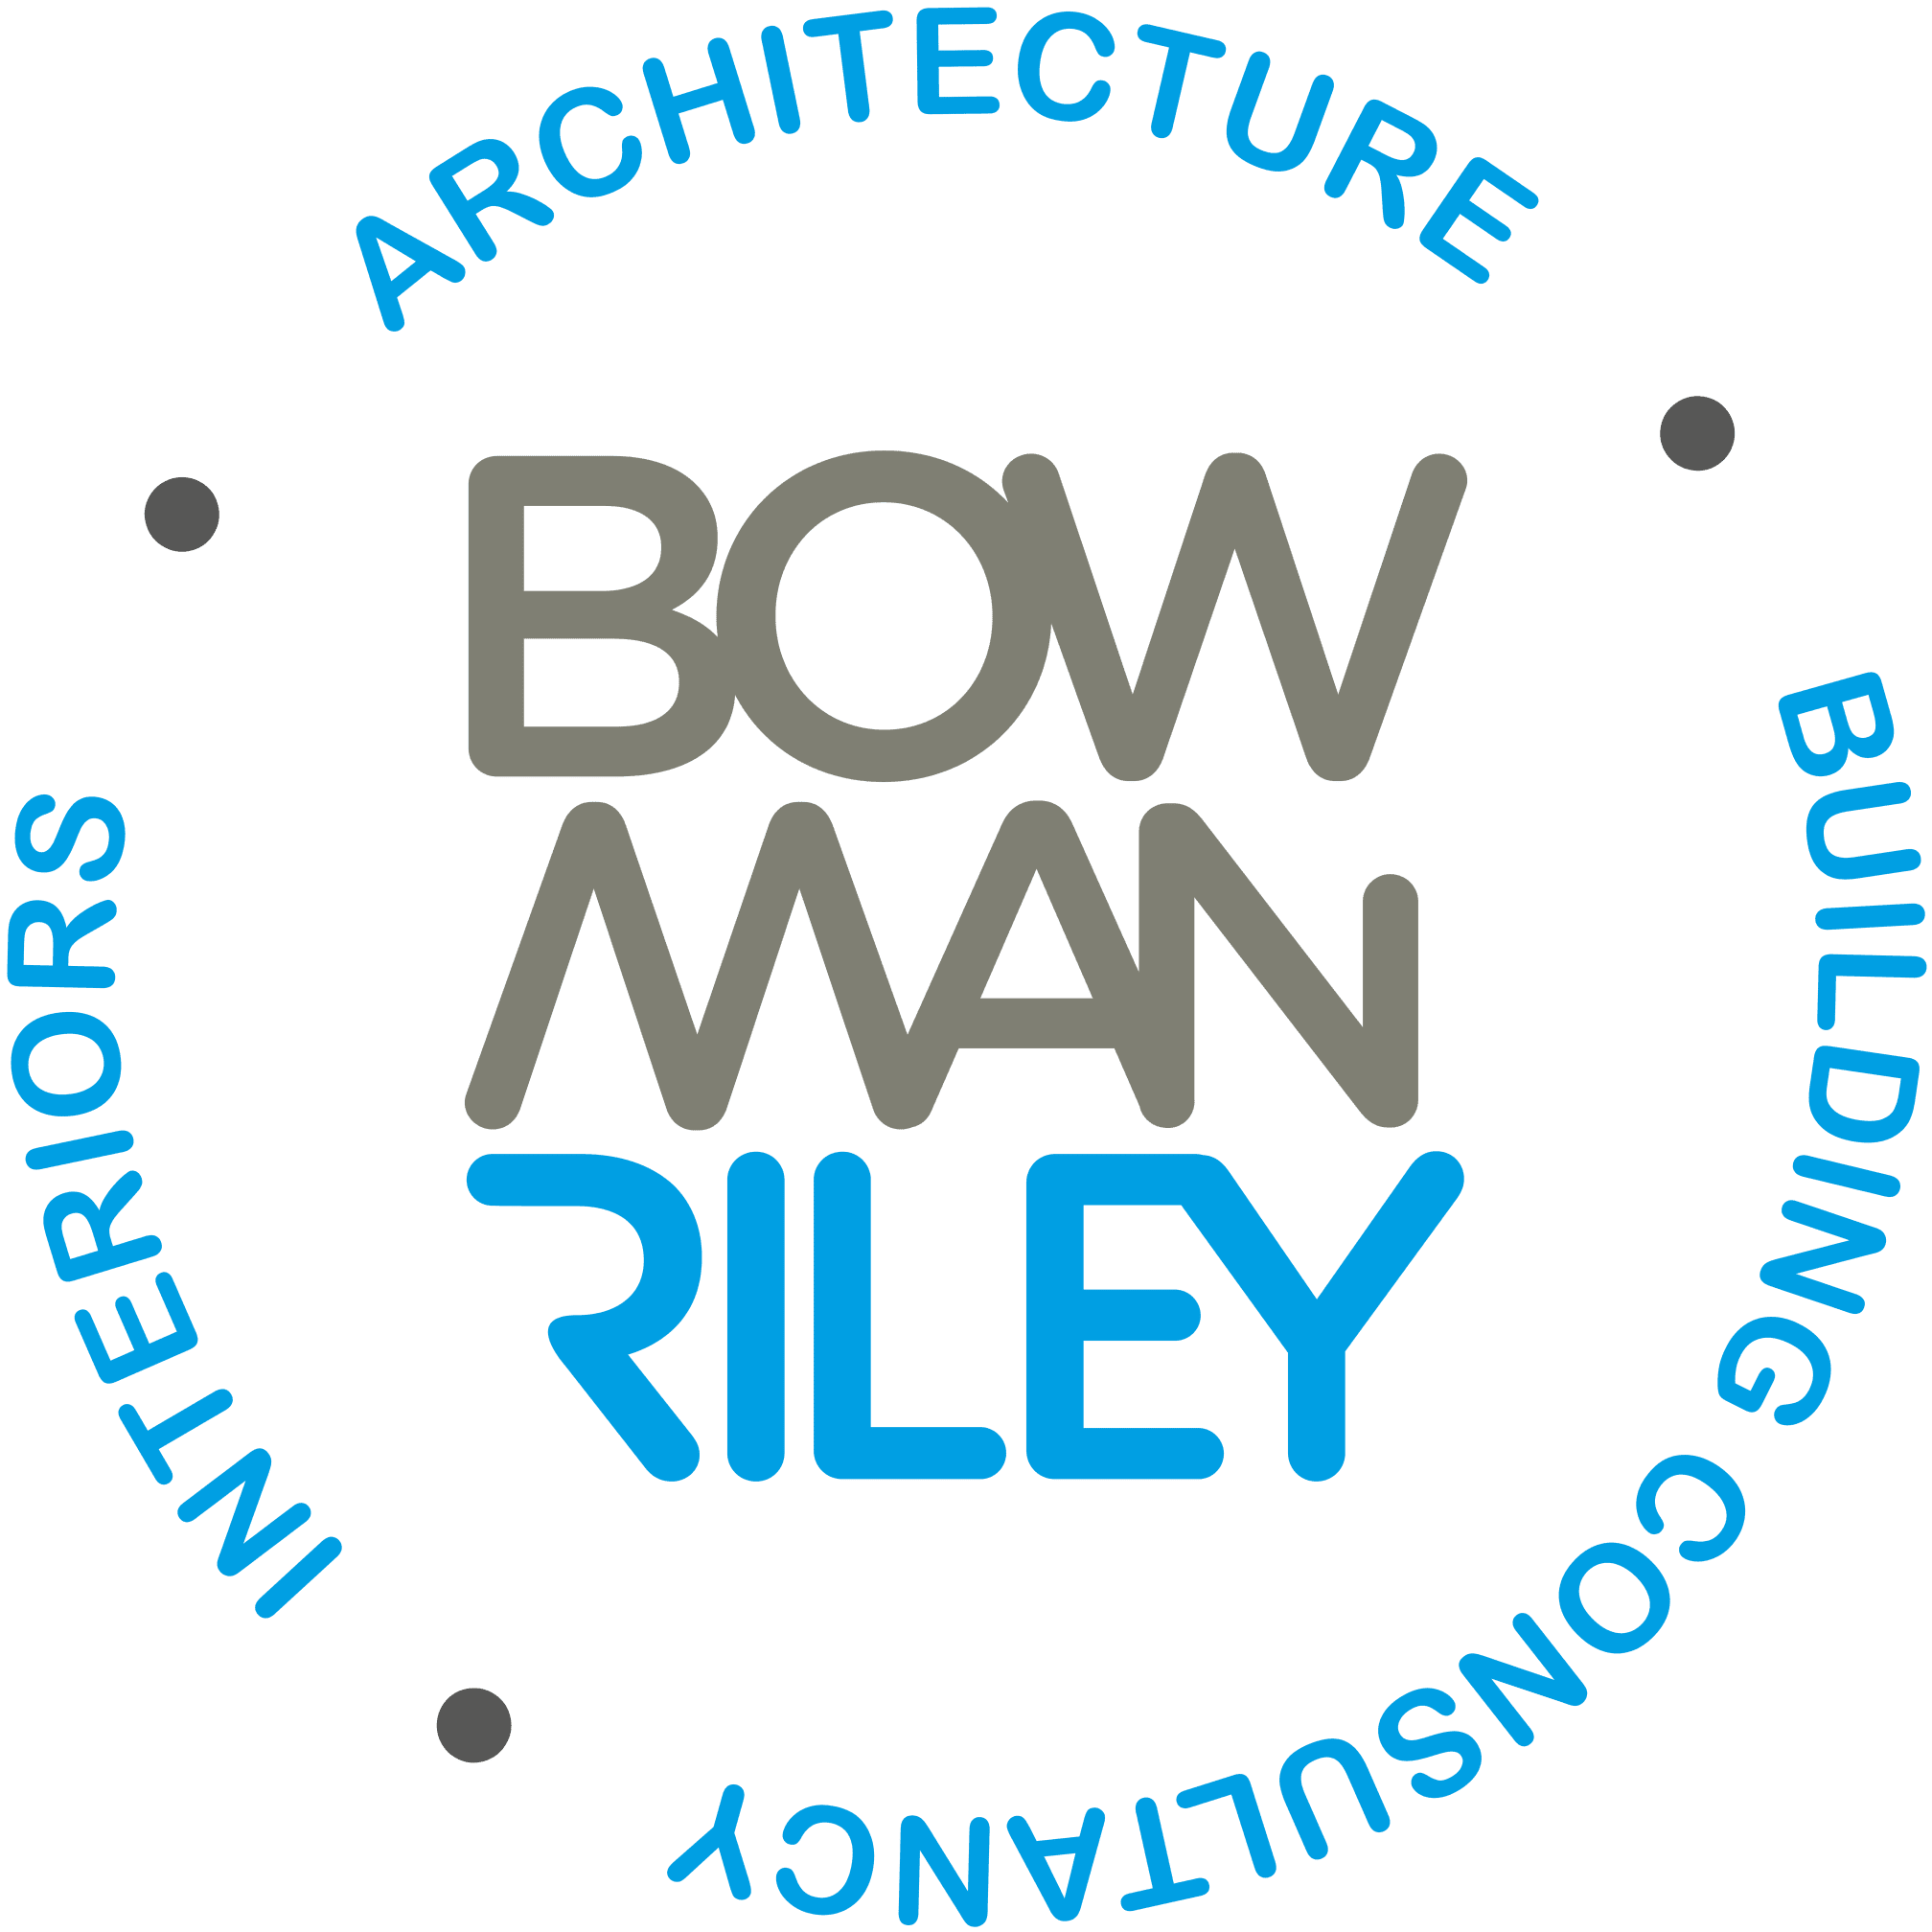 Bowman Riley, Architects, Building Consultants, Interiors | Wellington House, Otley Street, Skipton BD23 1EL | +44 1756 795611